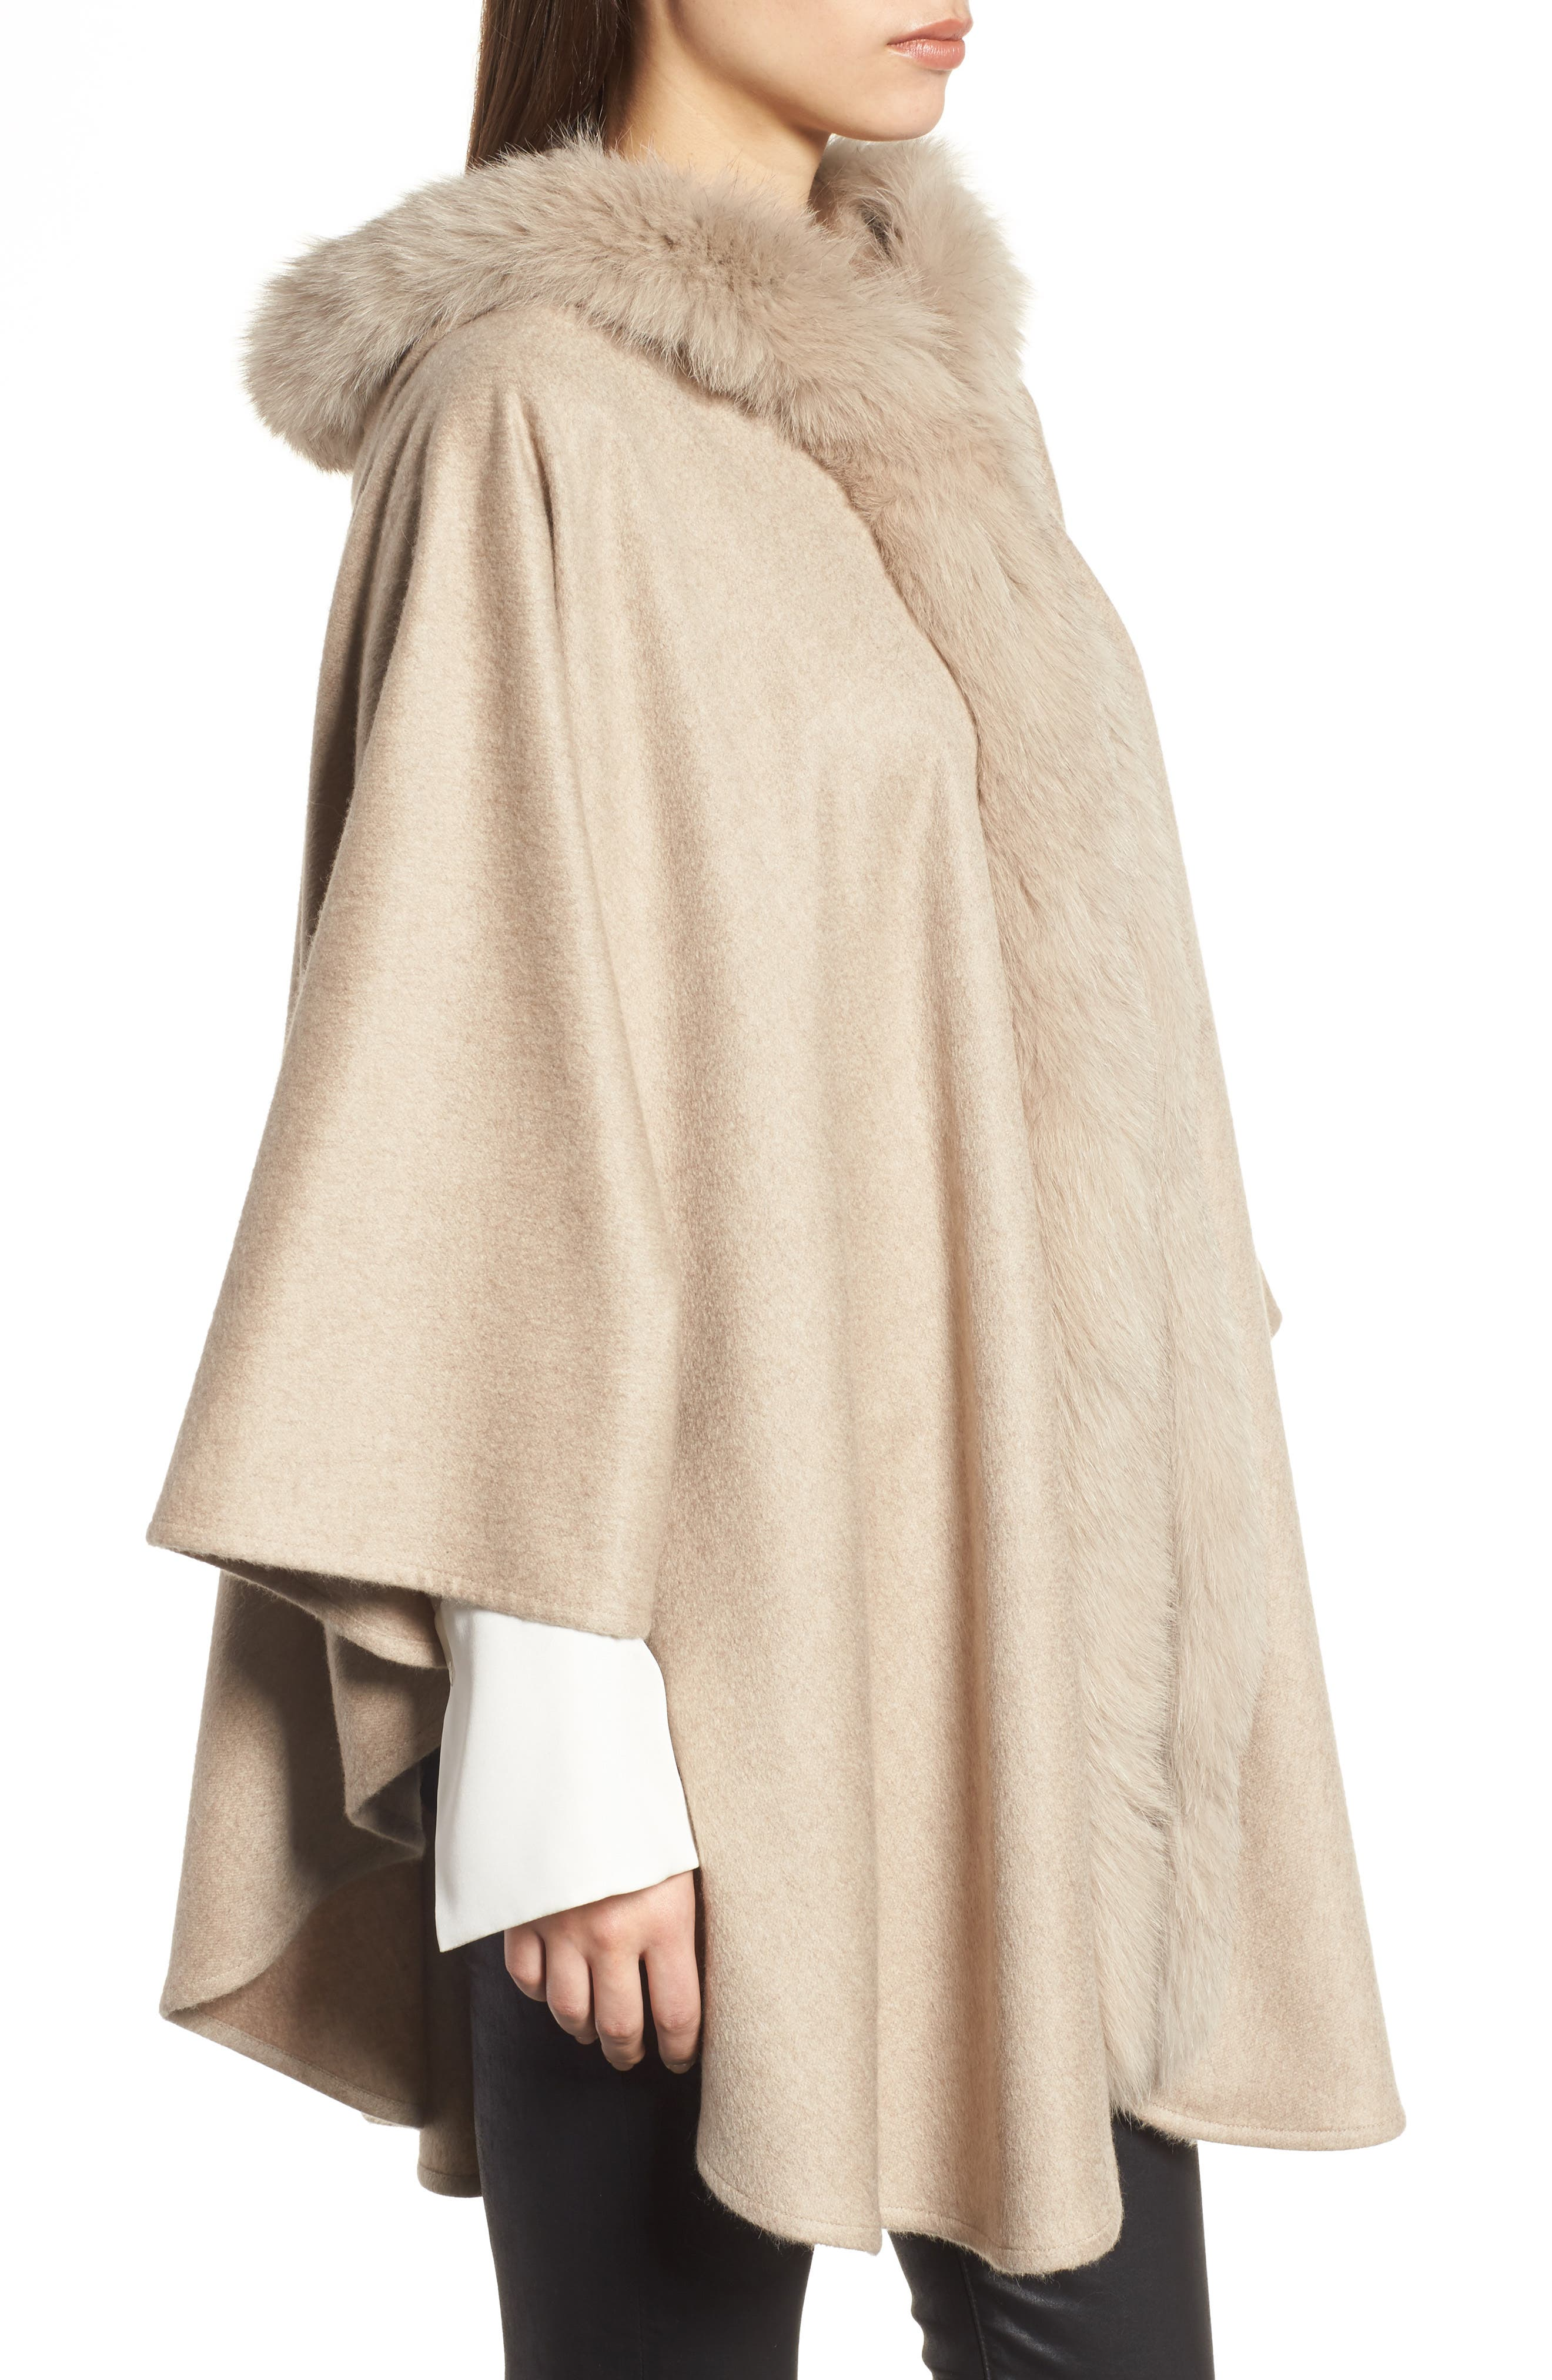 Cashmere Hooded Cape with Genuine Fox Fur Trim,                             Alternate thumbnail 3, color,                             020